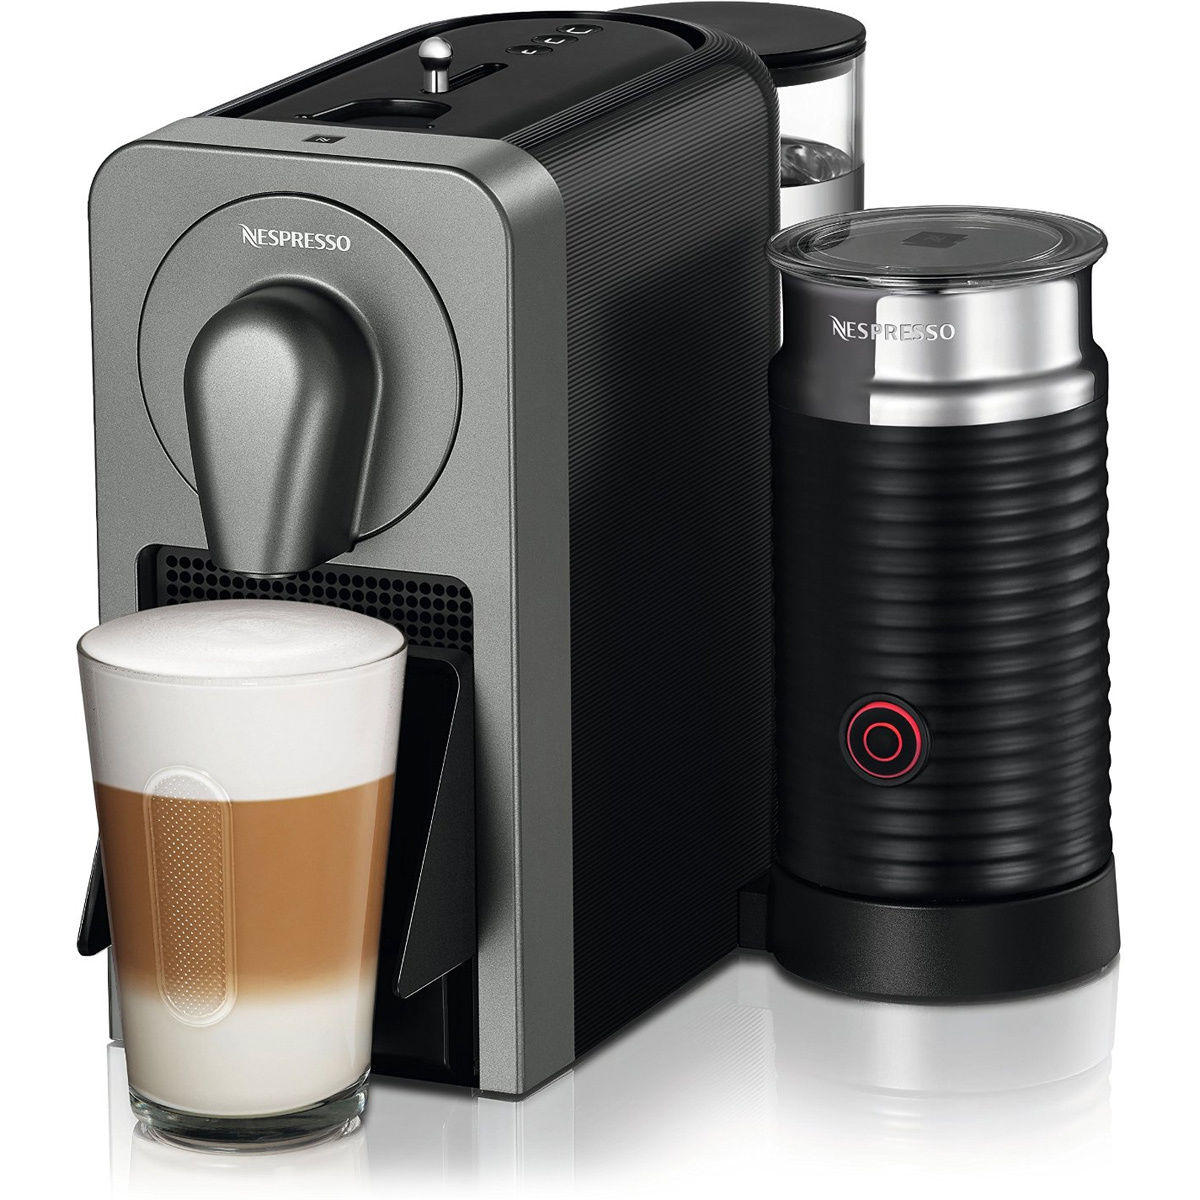 Nespresso Prodigio Smart App Connected Coffee & Espresso Maker w/ Milk Frother